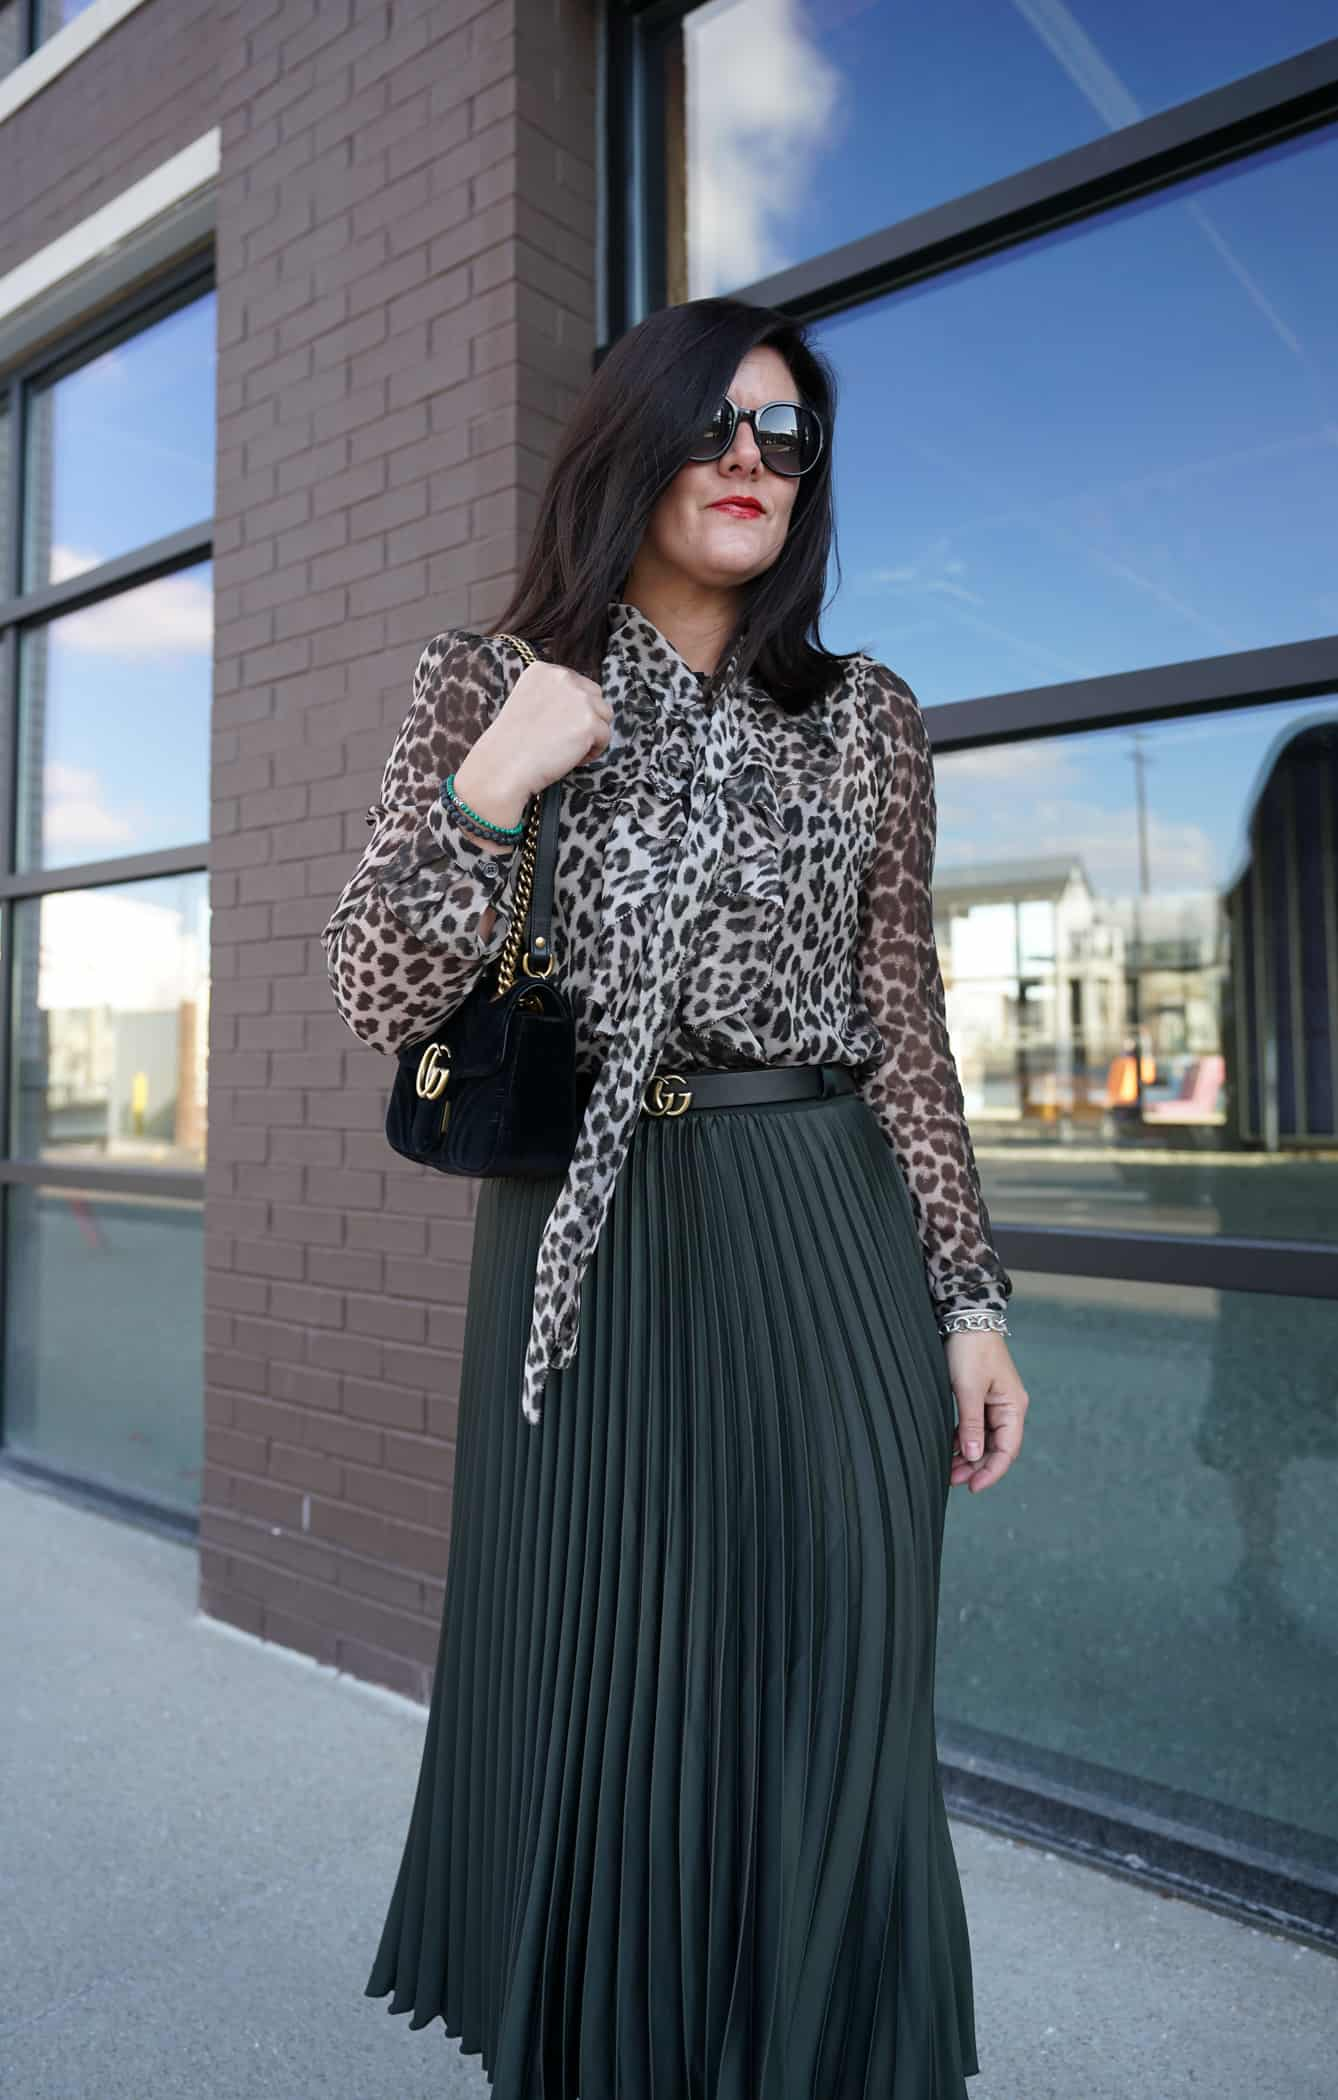 A Lily Love Affair wearing a green pleated skirt, a leopard long sleeve blouse with a black gucci bag